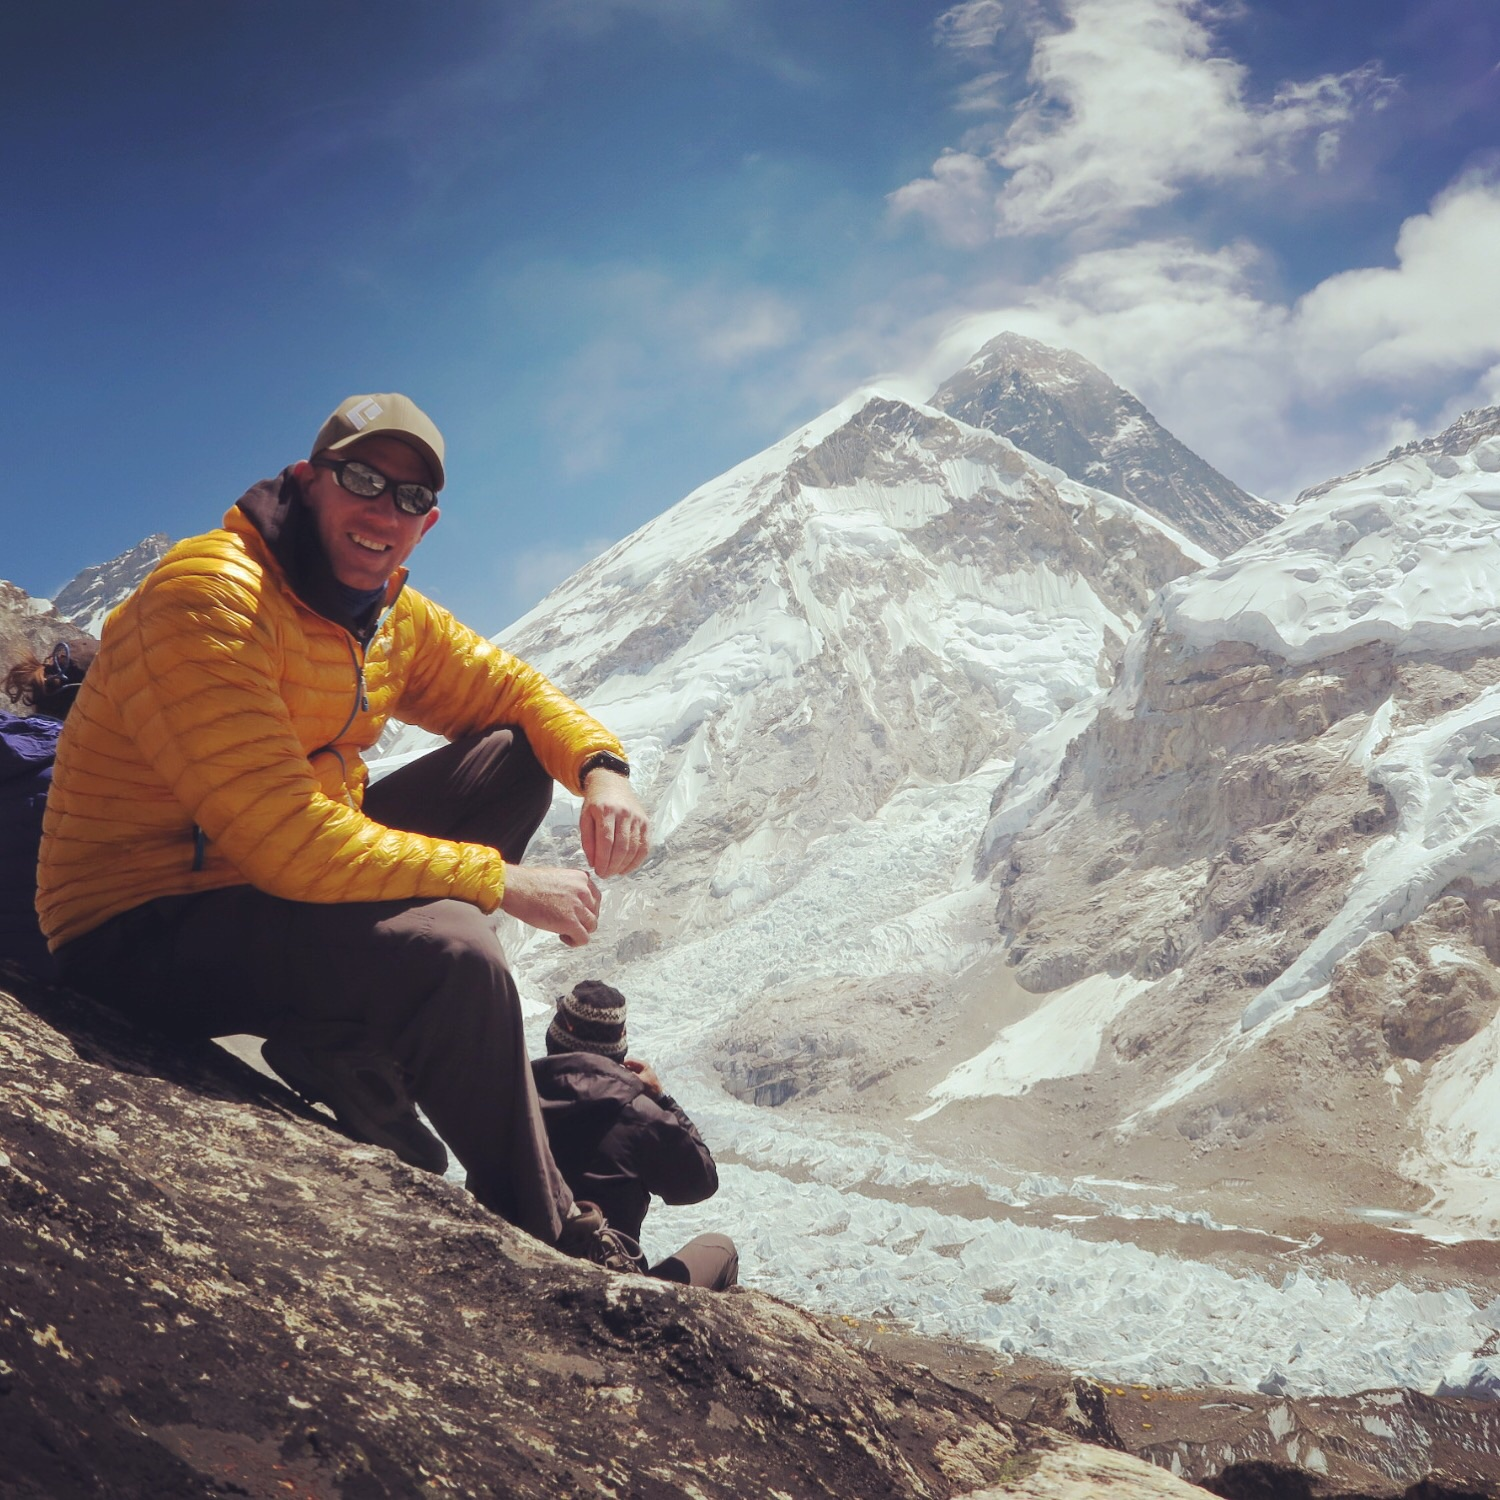 From Pumori Base Camp, views of the summit of Everest.